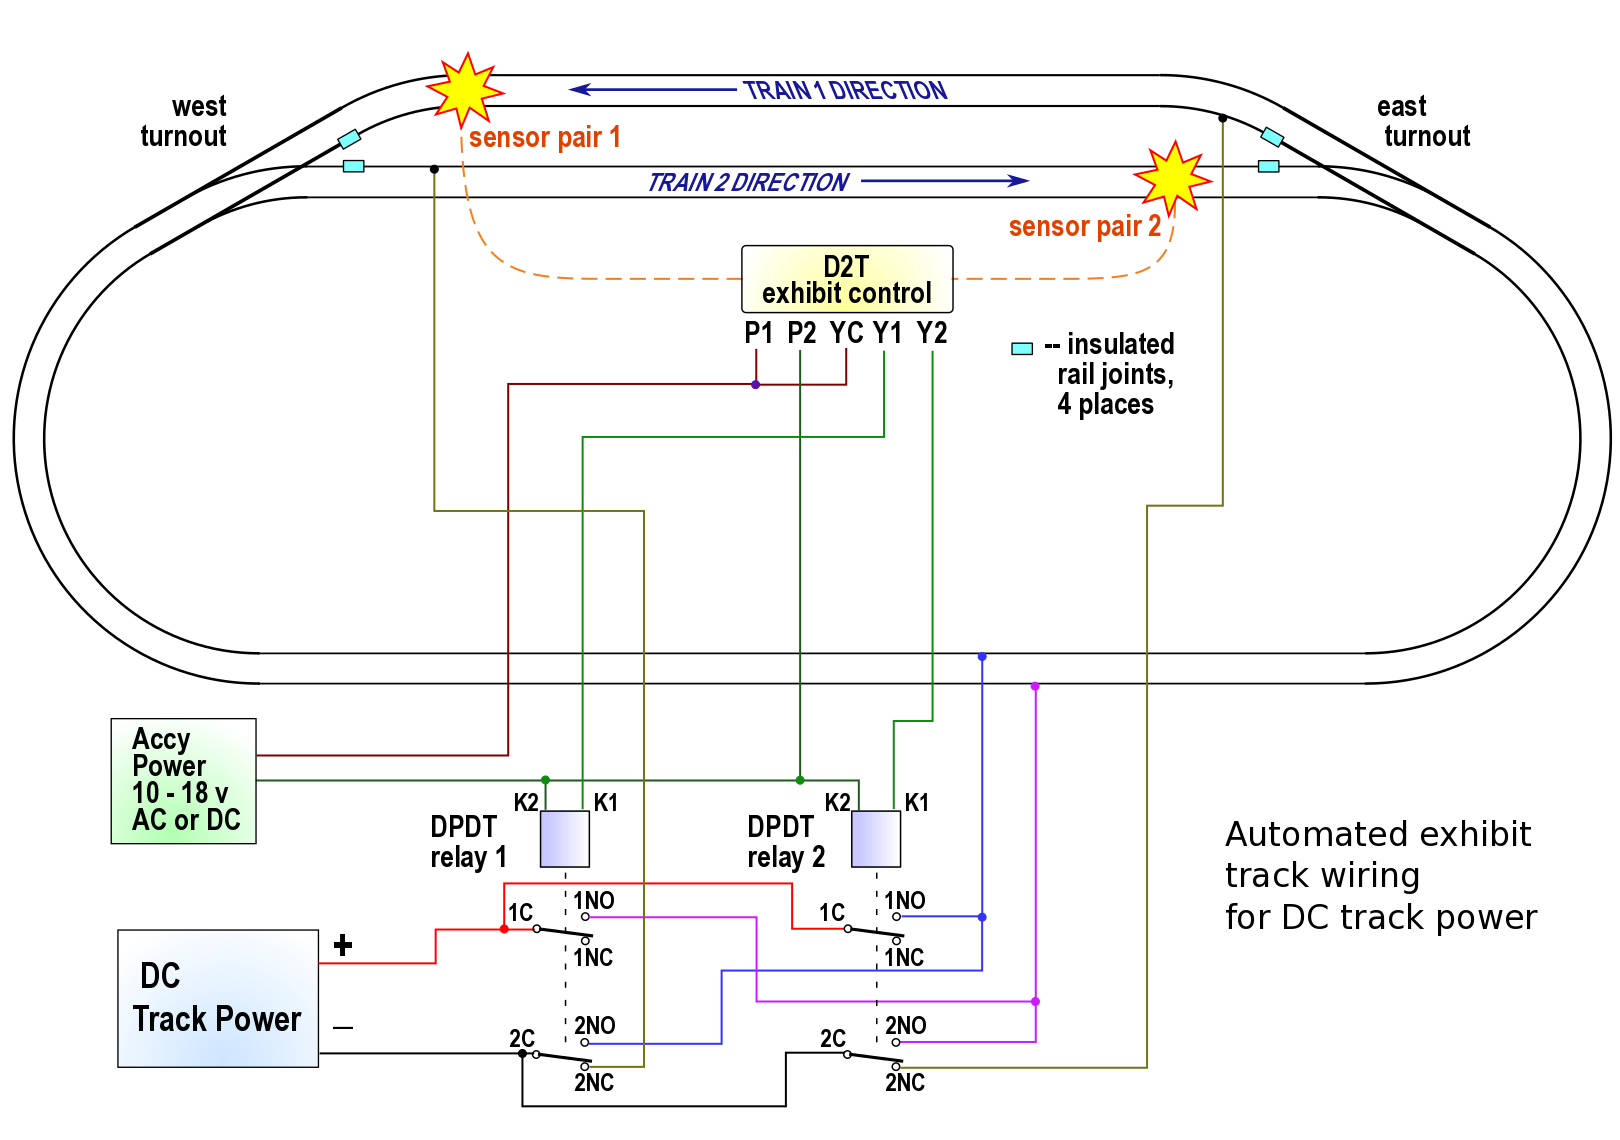 wiring diagrams for model railway free download wiring diagram element in series wiring diagram free download wiring diagram loop wiring diagram for dc �������� ����������� pinterest of wiring diagrams